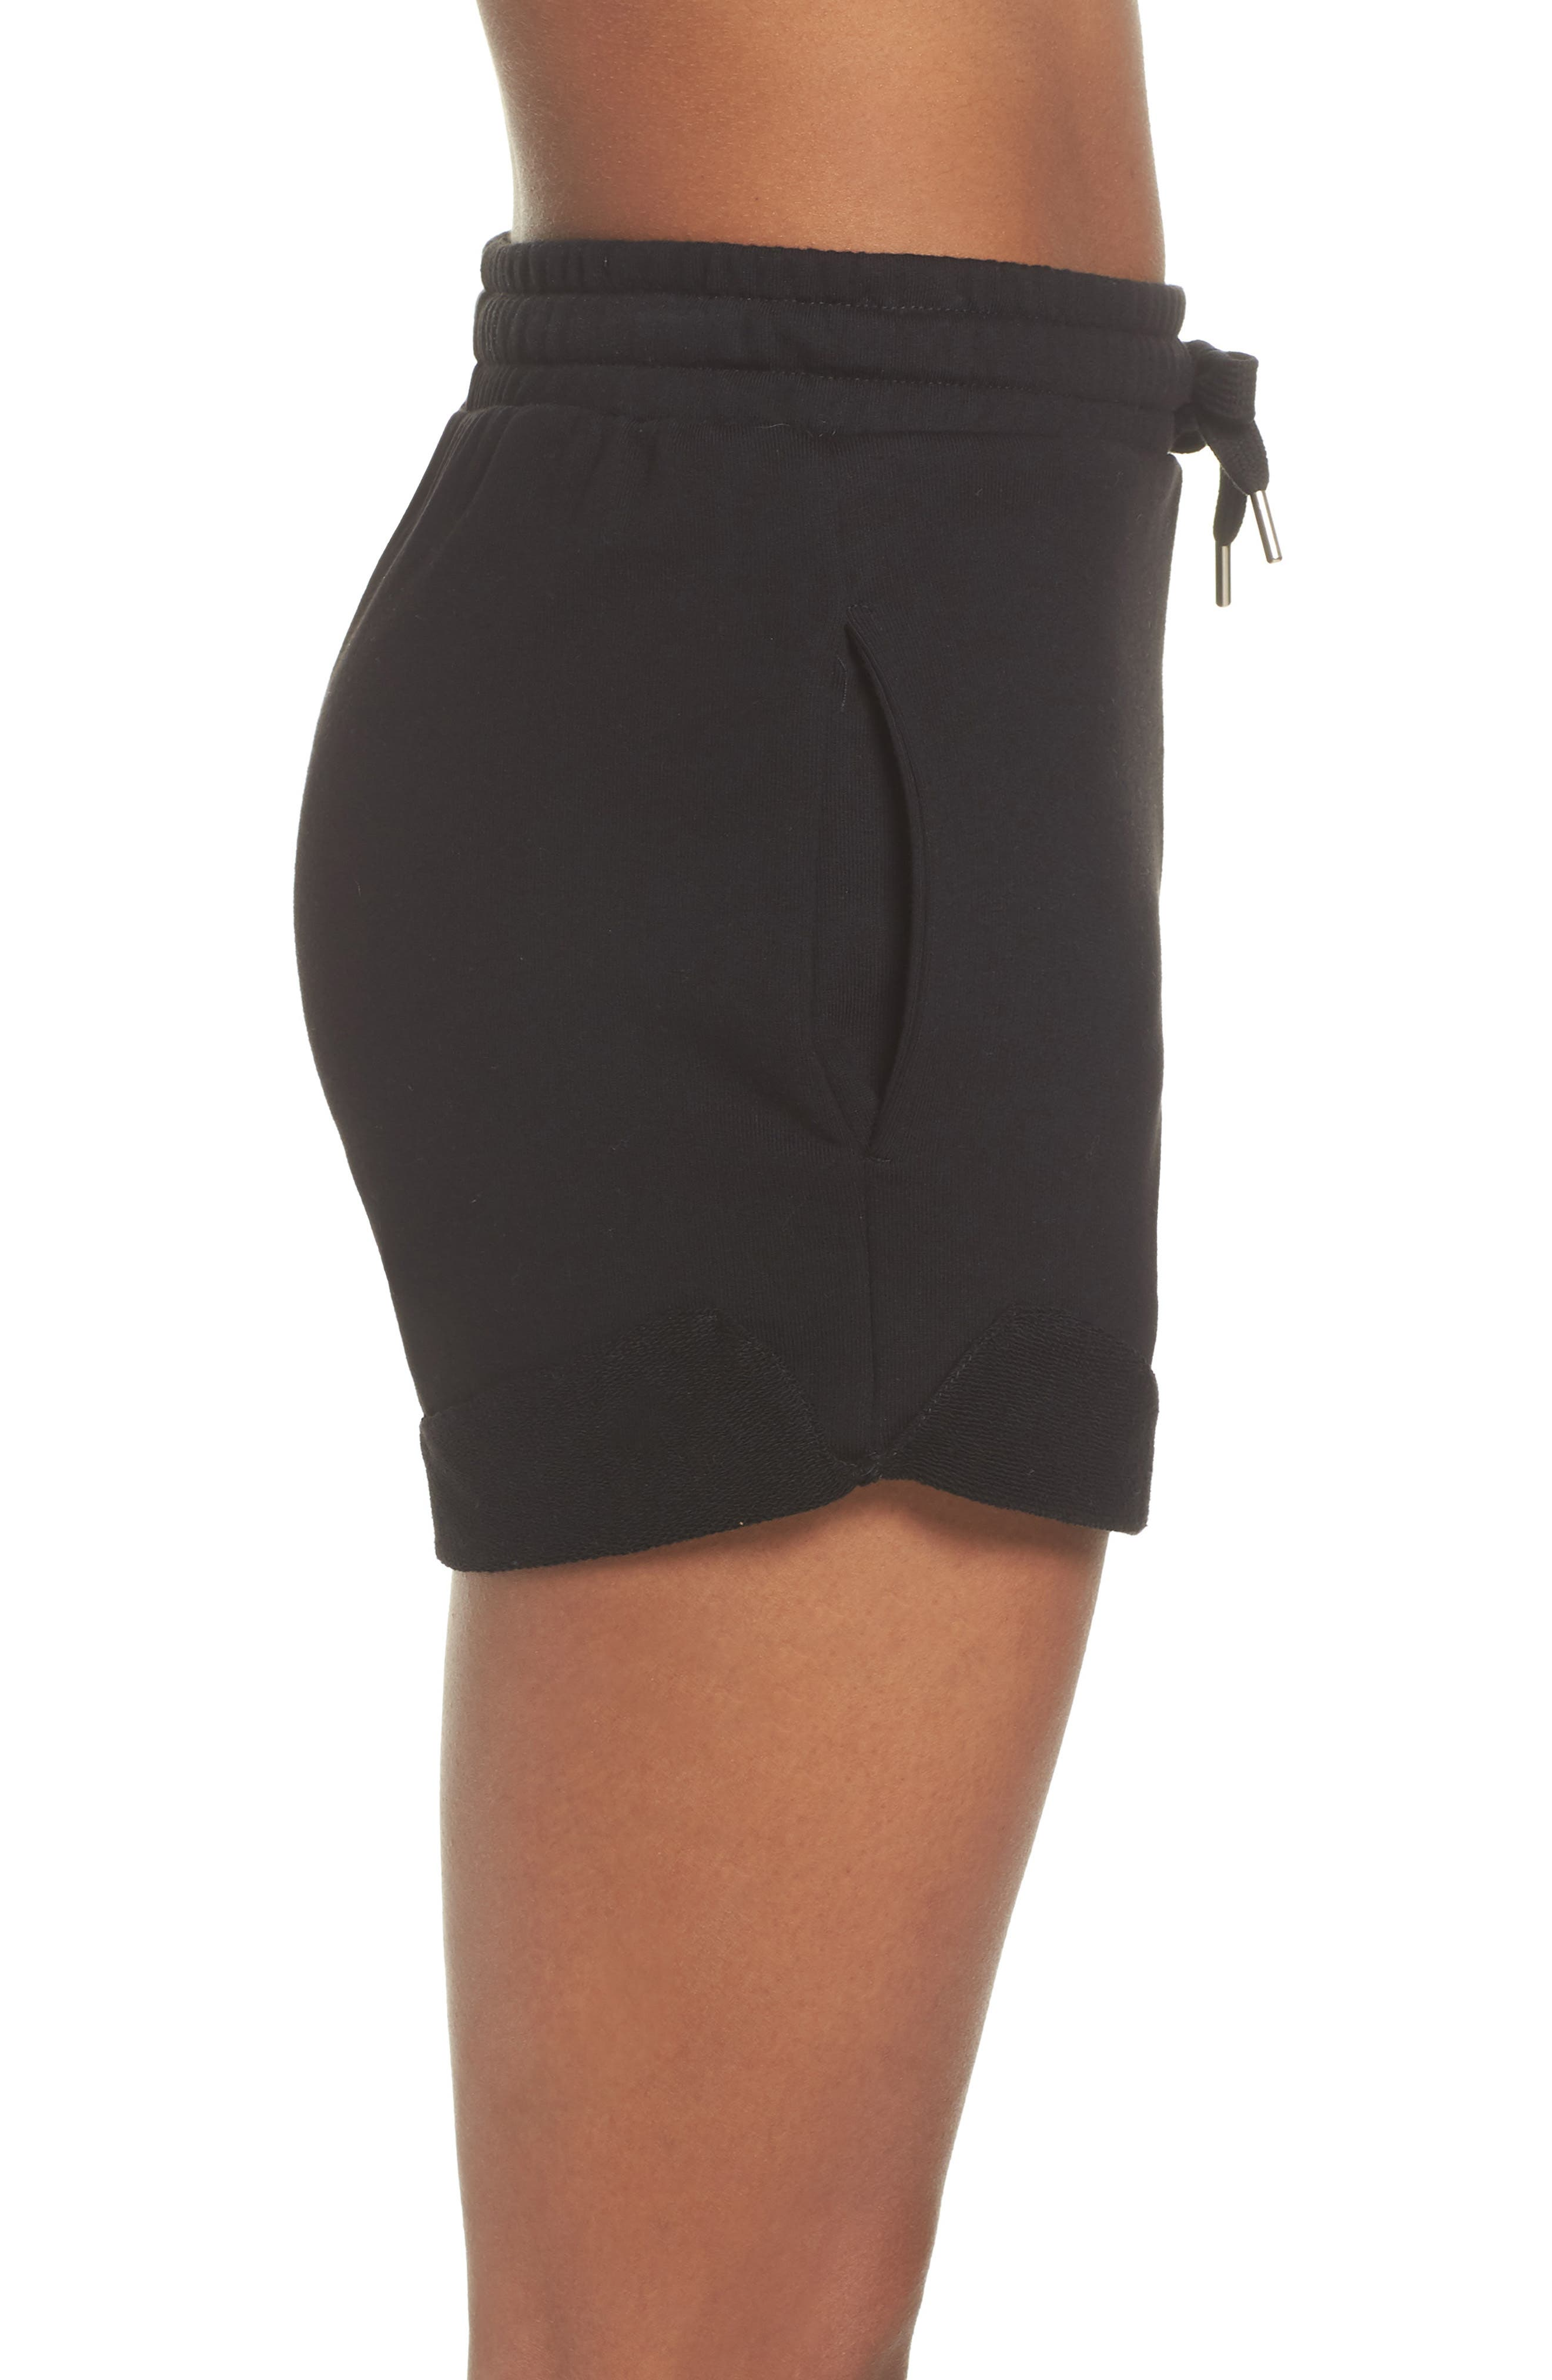 French Terry High Waist Shorts,                             Alternate thumbnail 3, color,                             Black